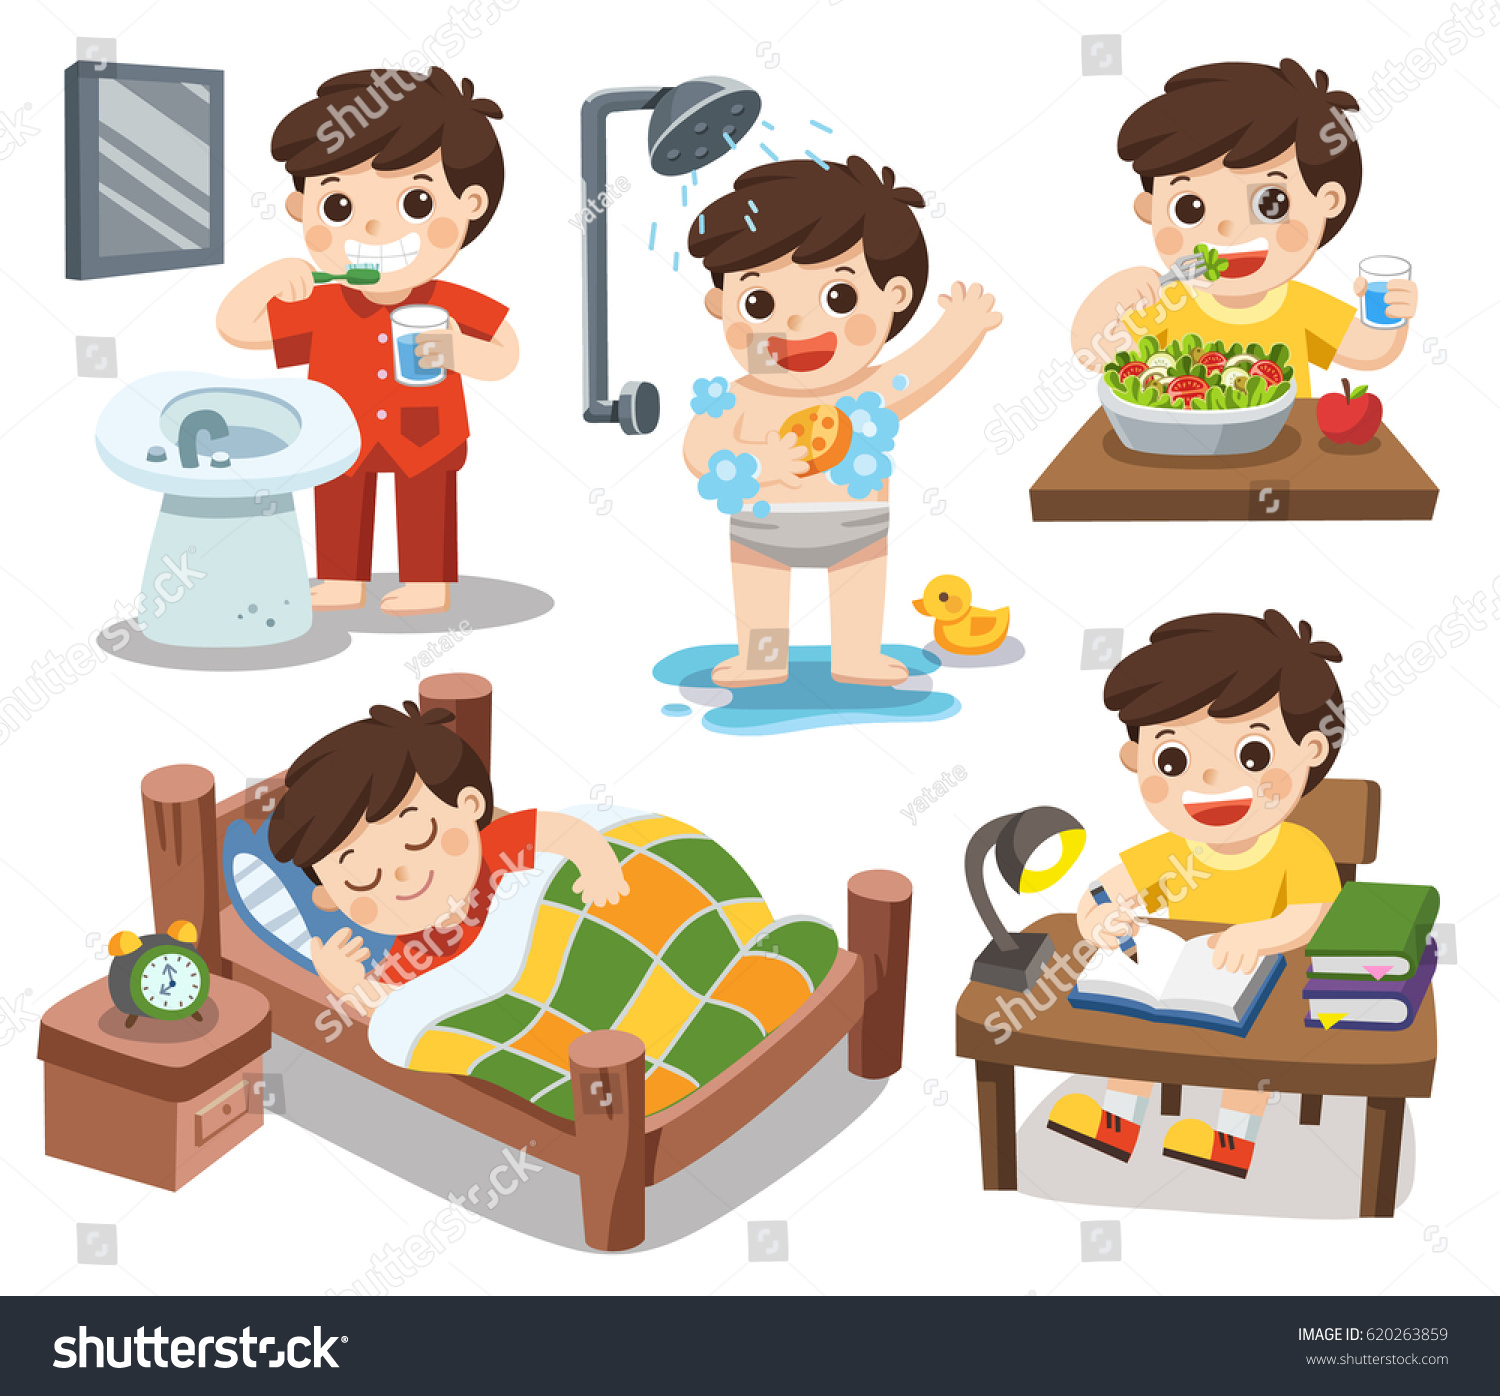 Library Of Bathroom Routine Clip Art Freeuse Stock